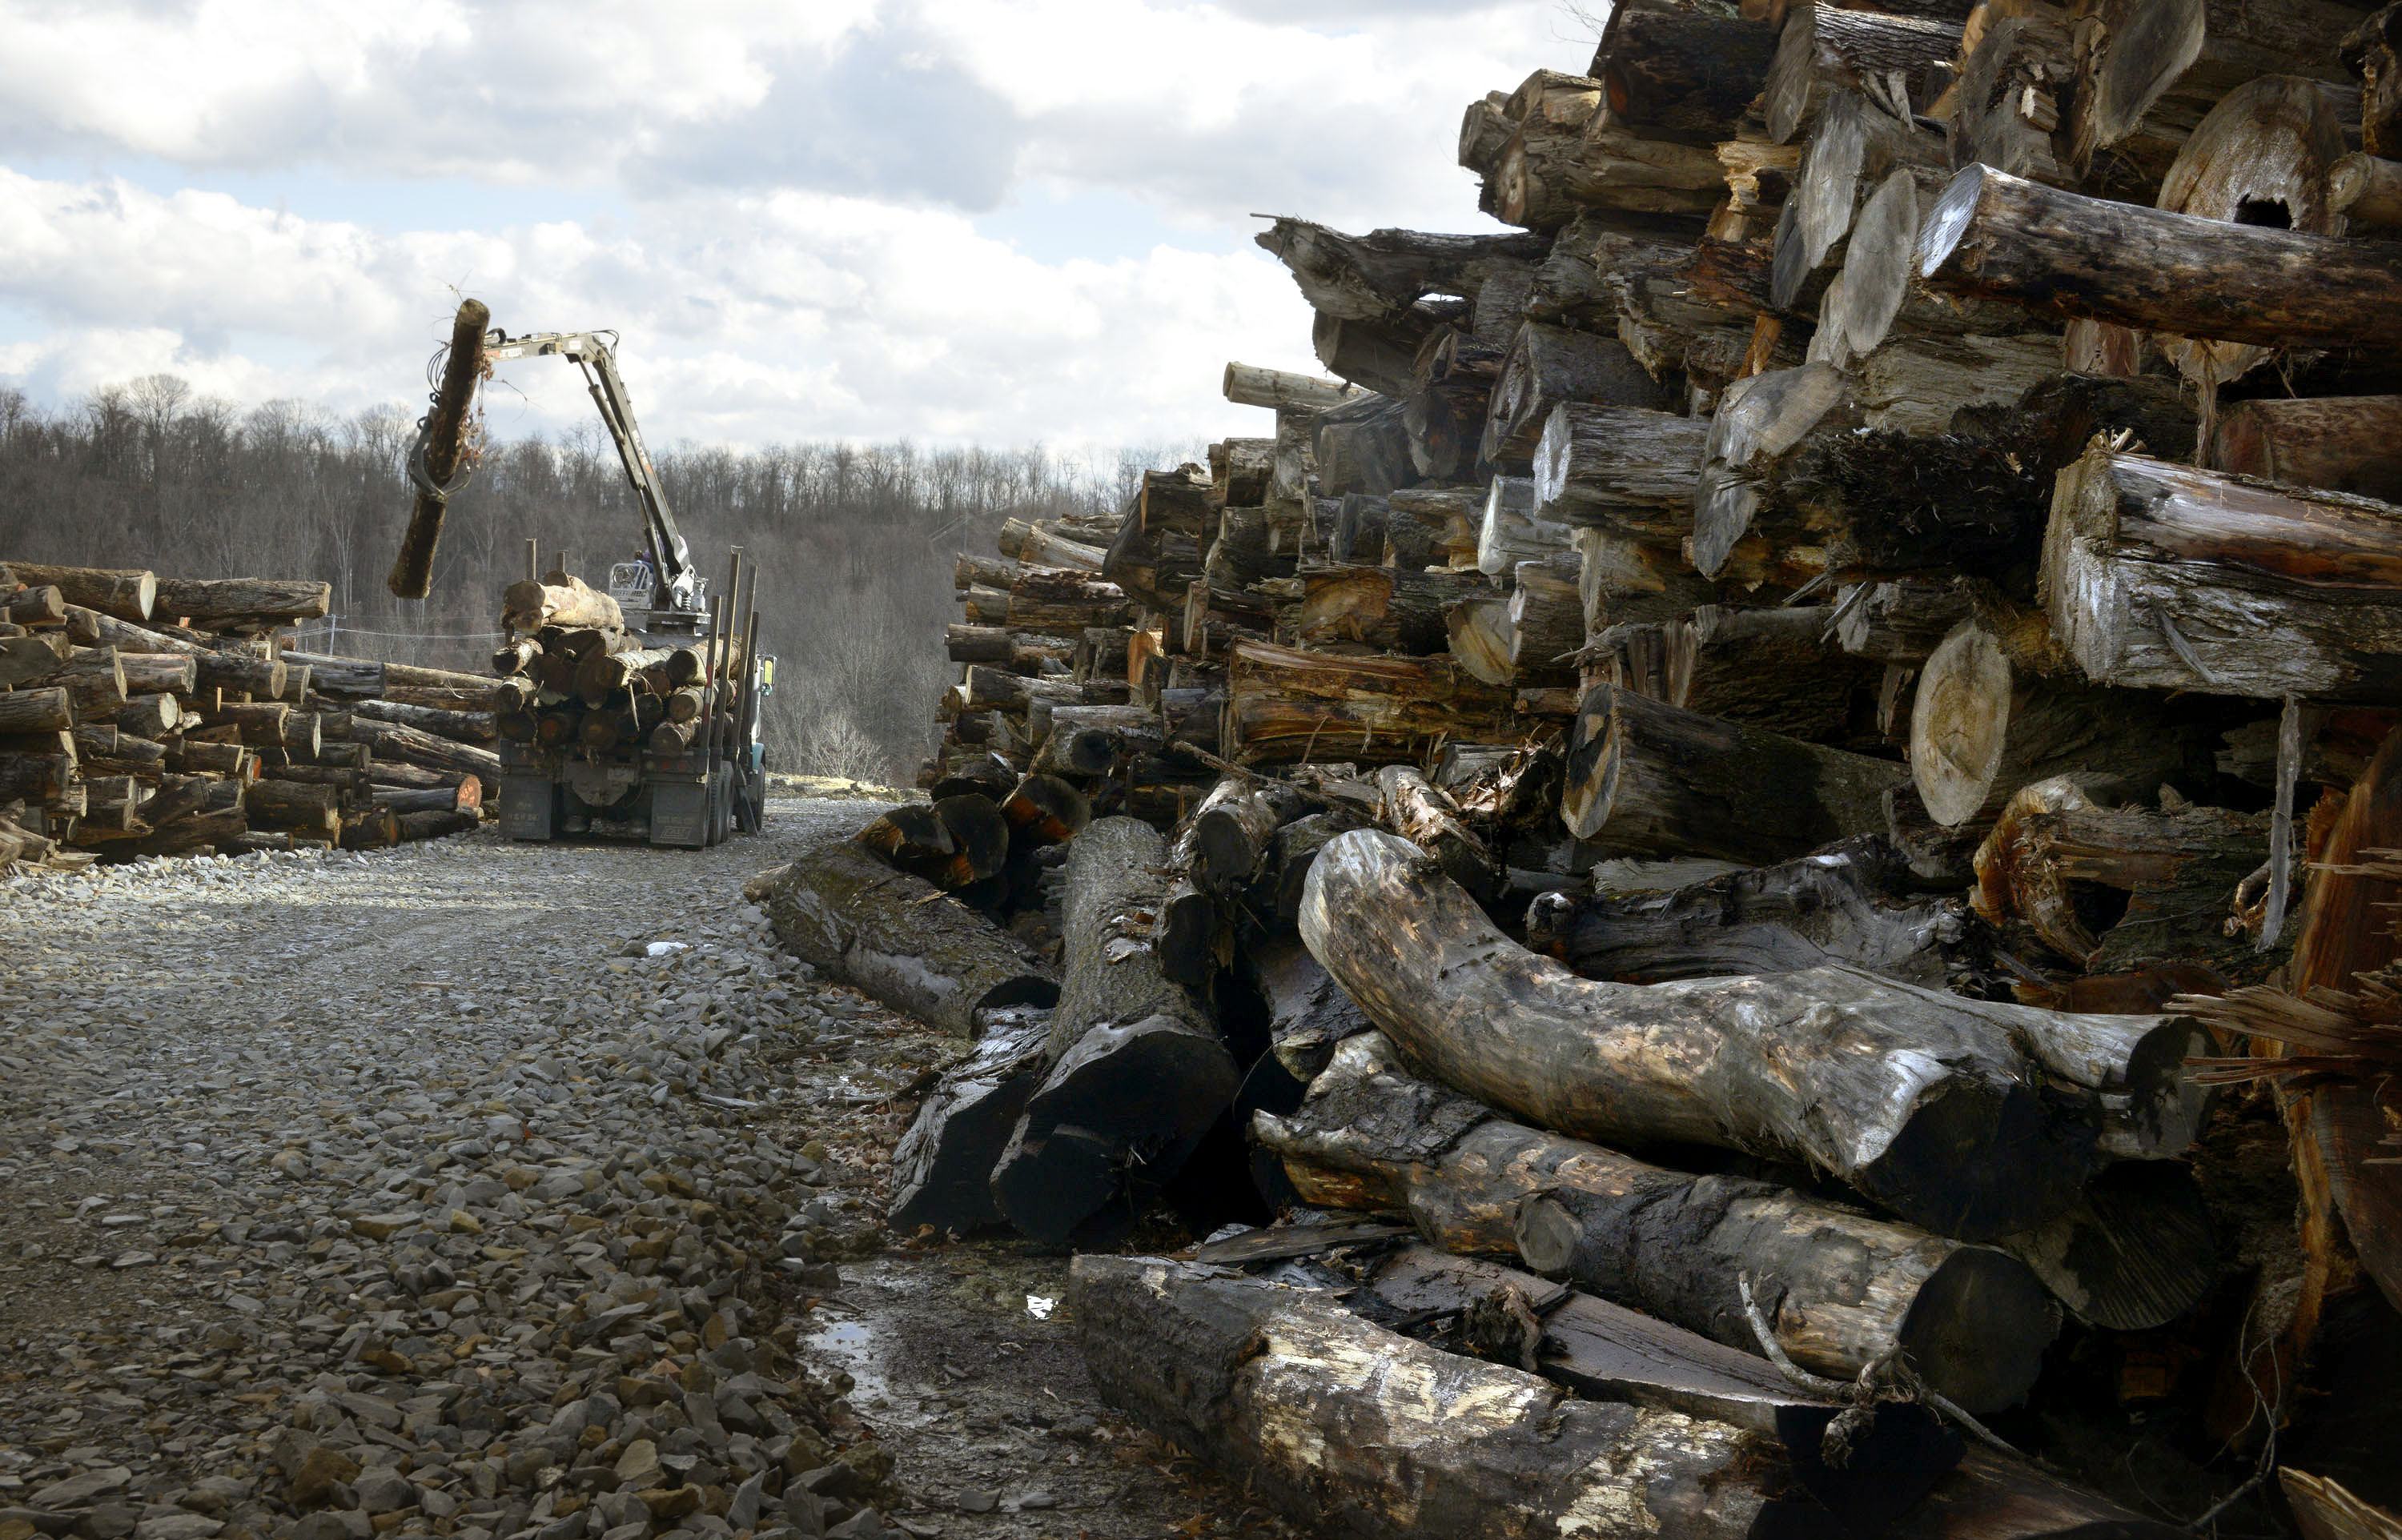 Washington County land clearing Logs that are too large are loaded and will be used for firewood and other products.